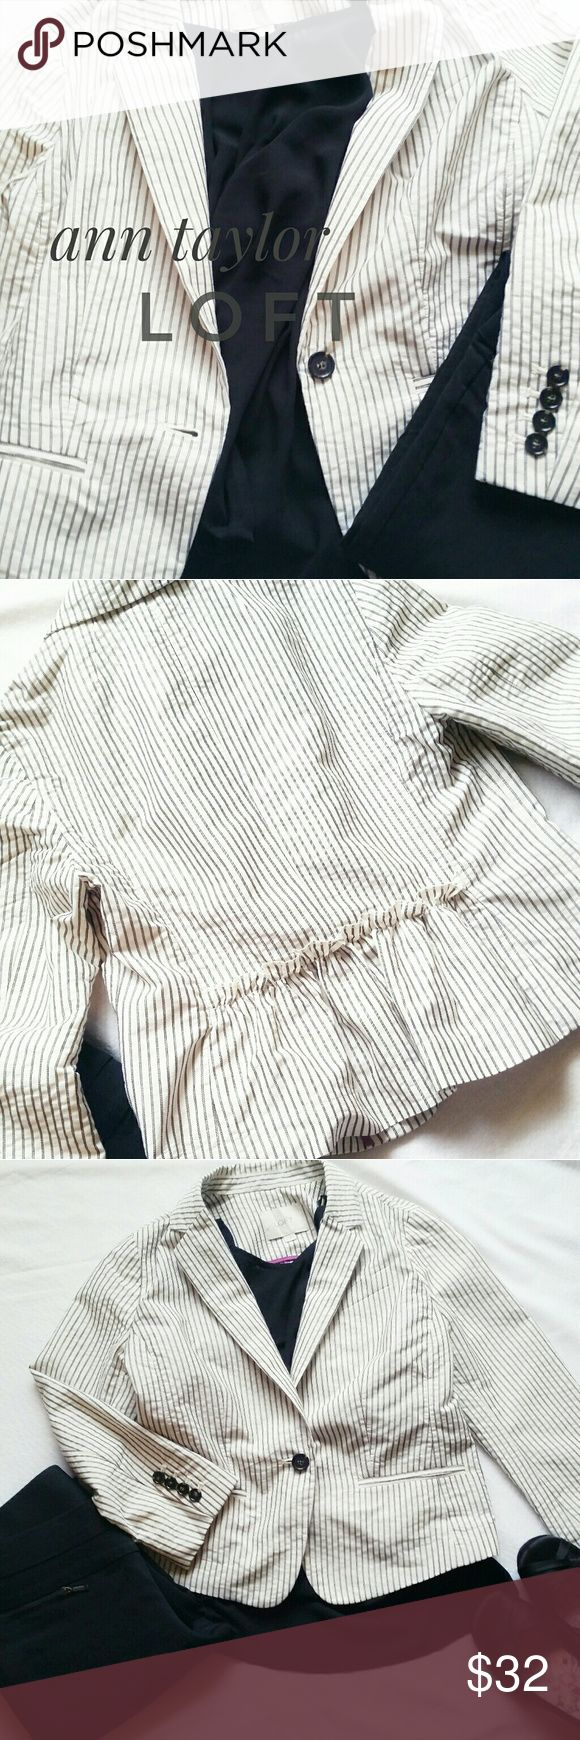 LOFT pinstripe blazer Such a cute blazer! White with a gray pinstripe, size 4p, 3/4 length sleeves. One button closure, 4 buttons on each sleeve. The back is gathered and has an adorable ruffle. Excellent like new condition  Measurements available upon request LOFT Jackets & Coats Blazers